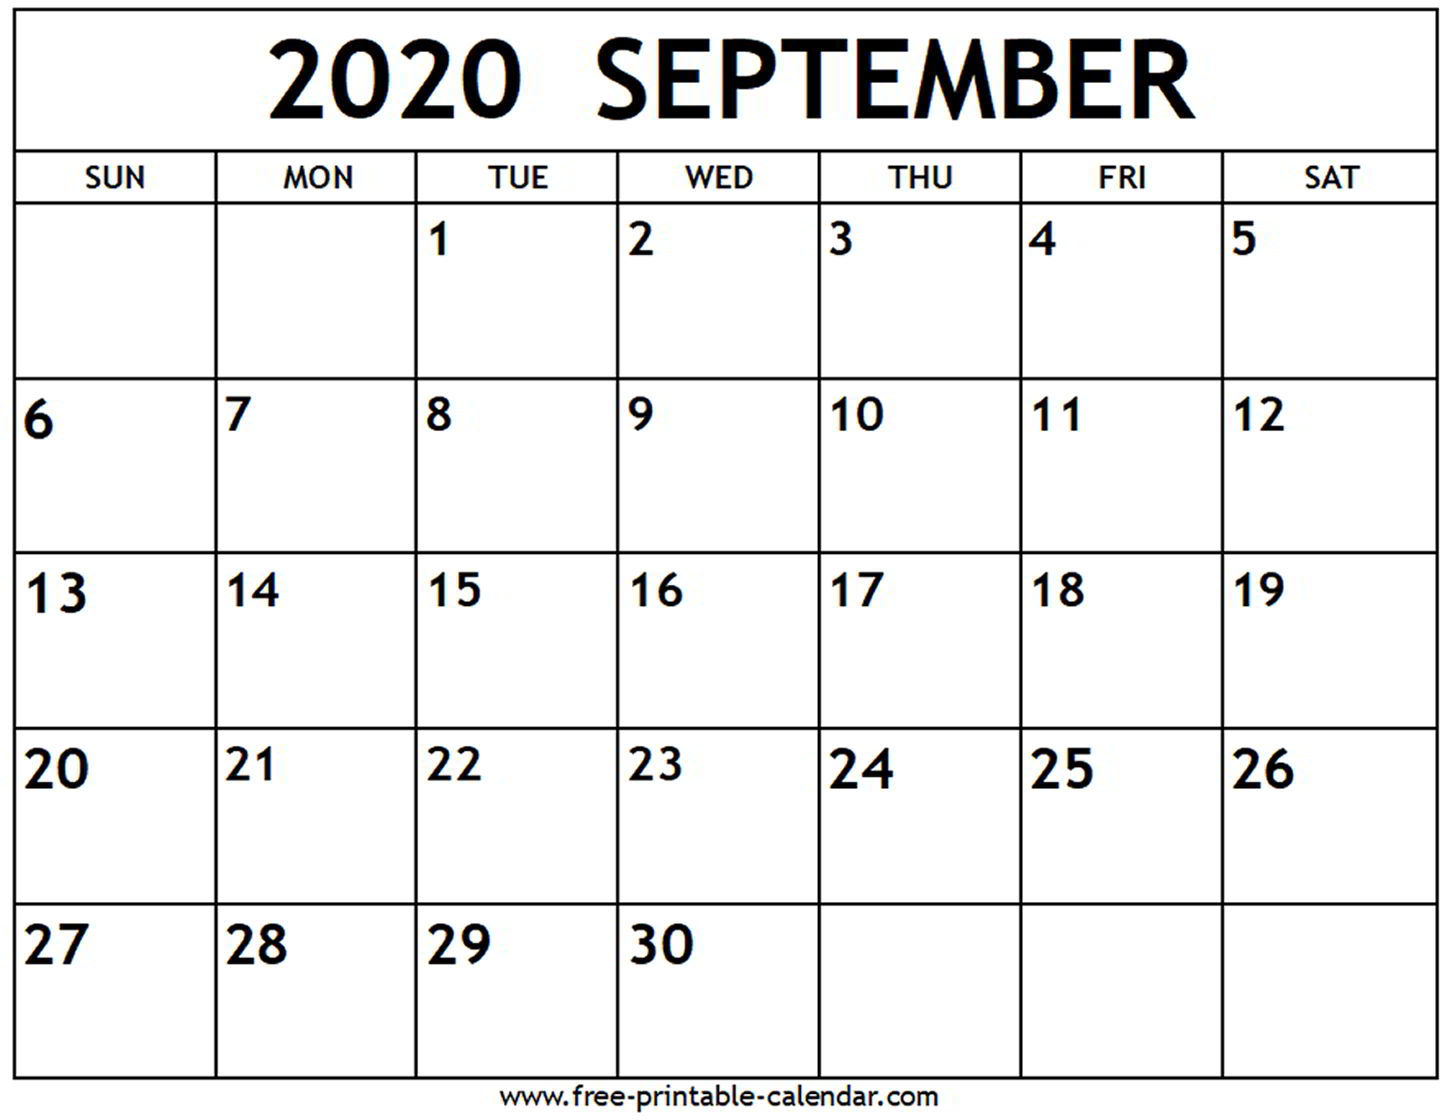 September Calendar 2020 Printable - Teke.wpart.co